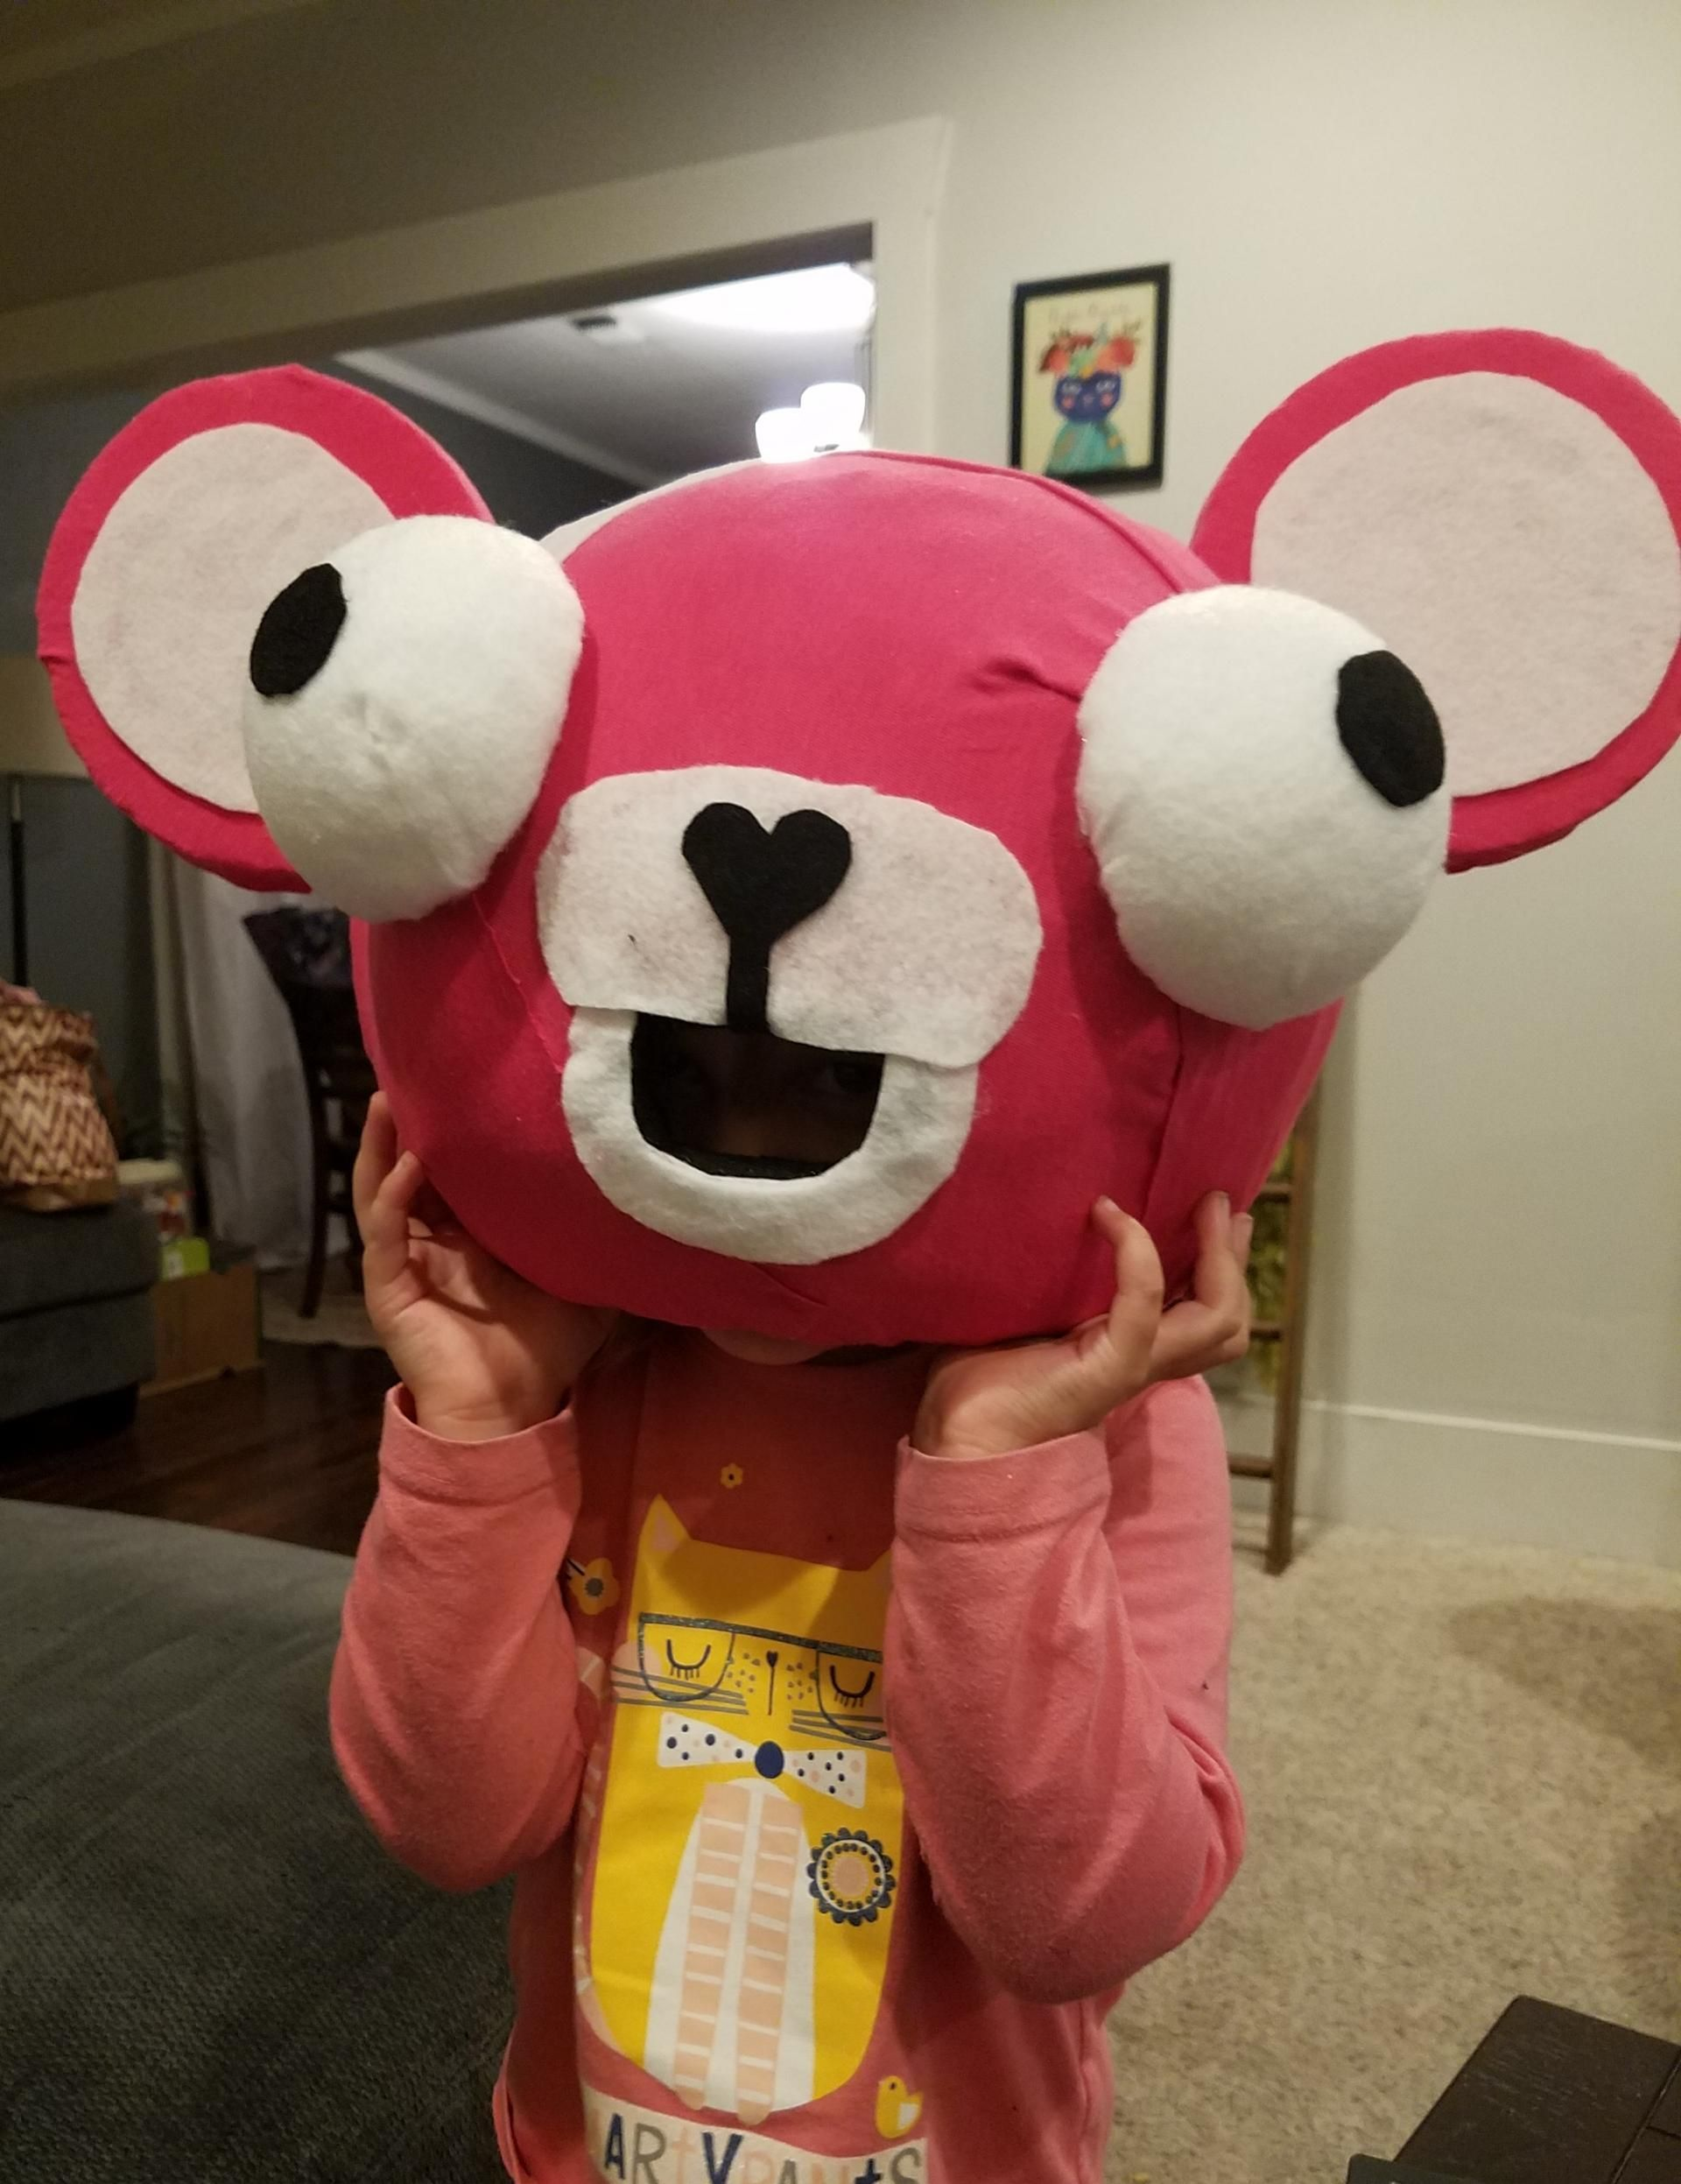 My Daughter Wanted To Be The Pink Panda With Glasses From Fortnite